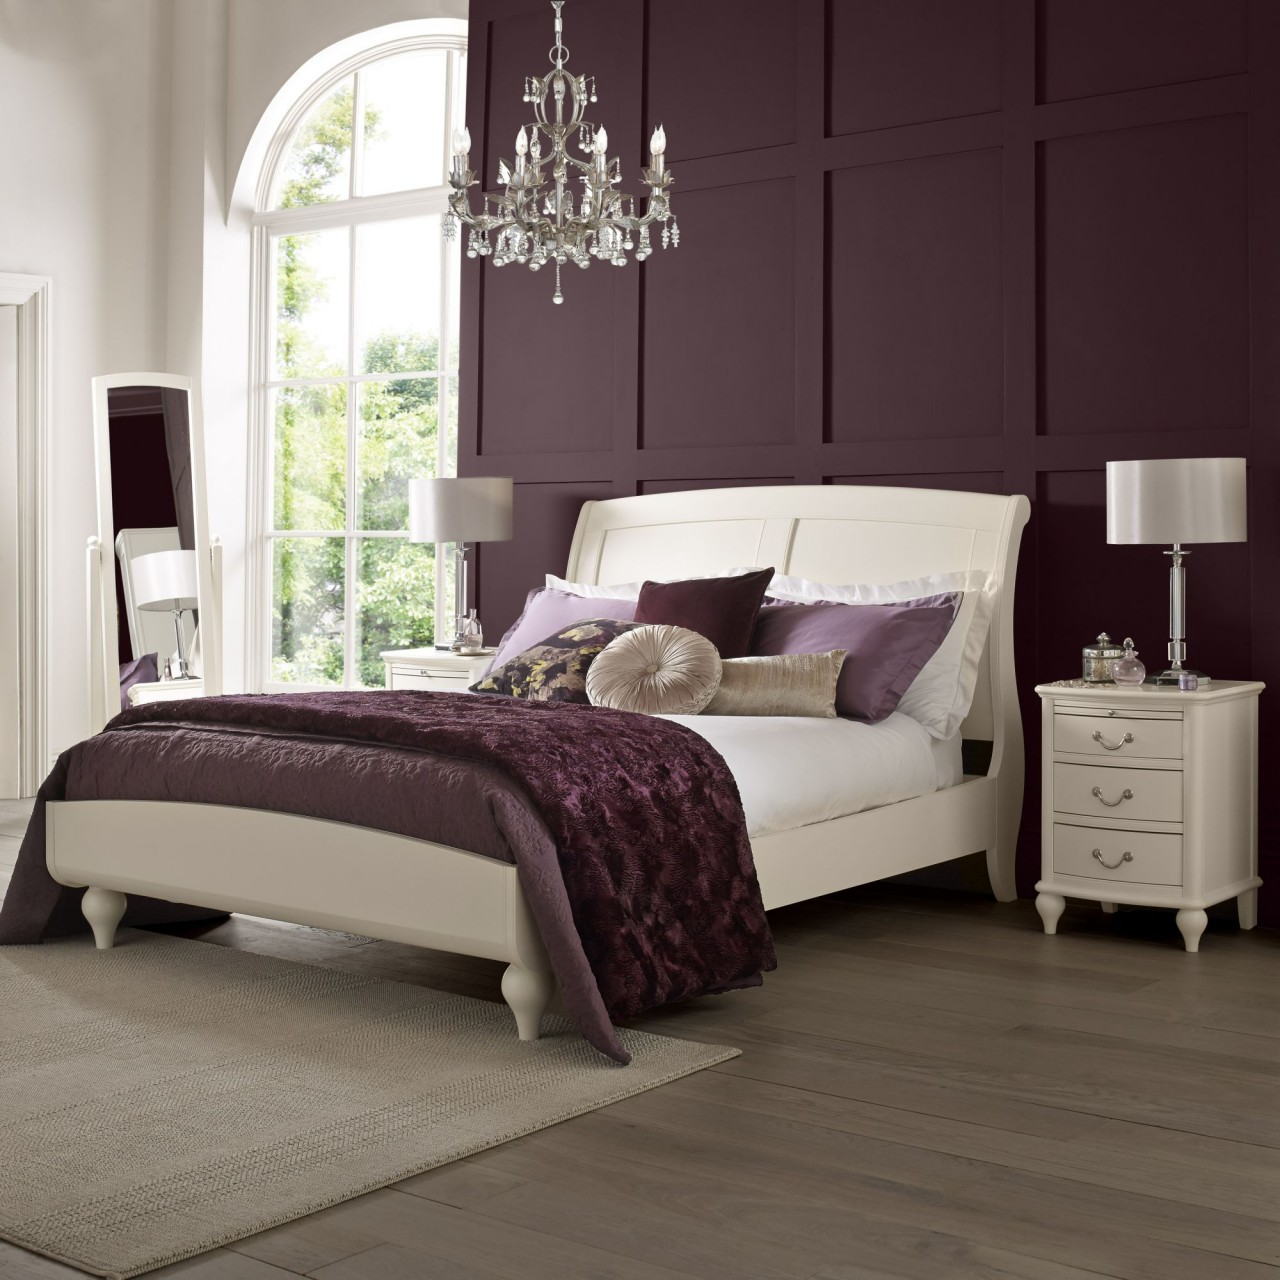 Bed frames uk bordeaux ivory bed frame for Bentley designs bedroom furniture